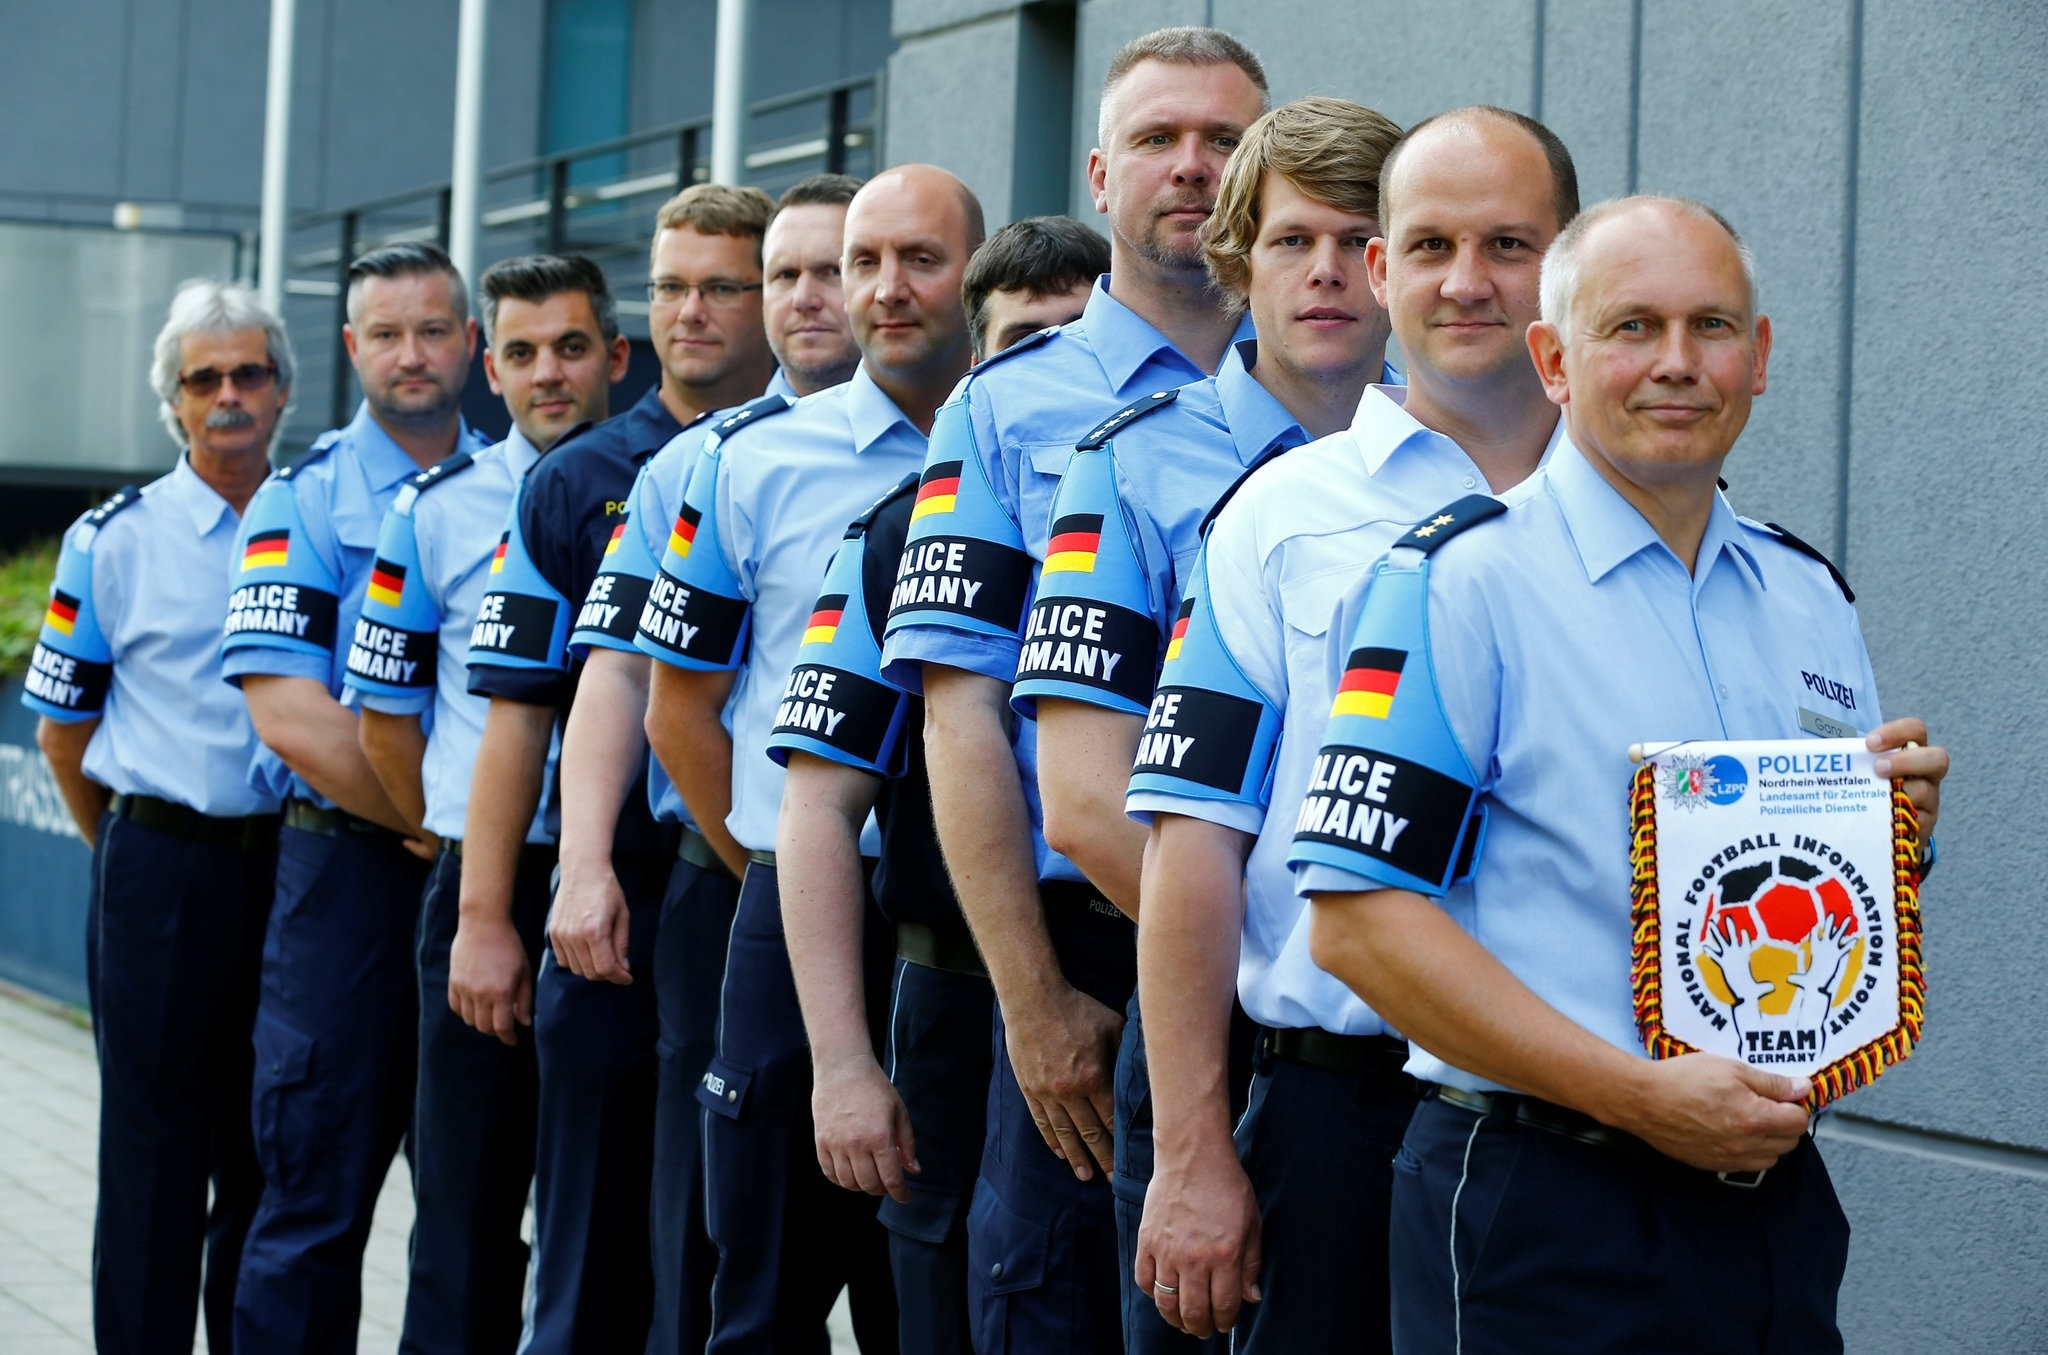 German police officers pose for an image with their armband reading ,Police Germany, at the North Rhine-Westphalian police headquarters in Duisburg, Germany, June 6, 2016.